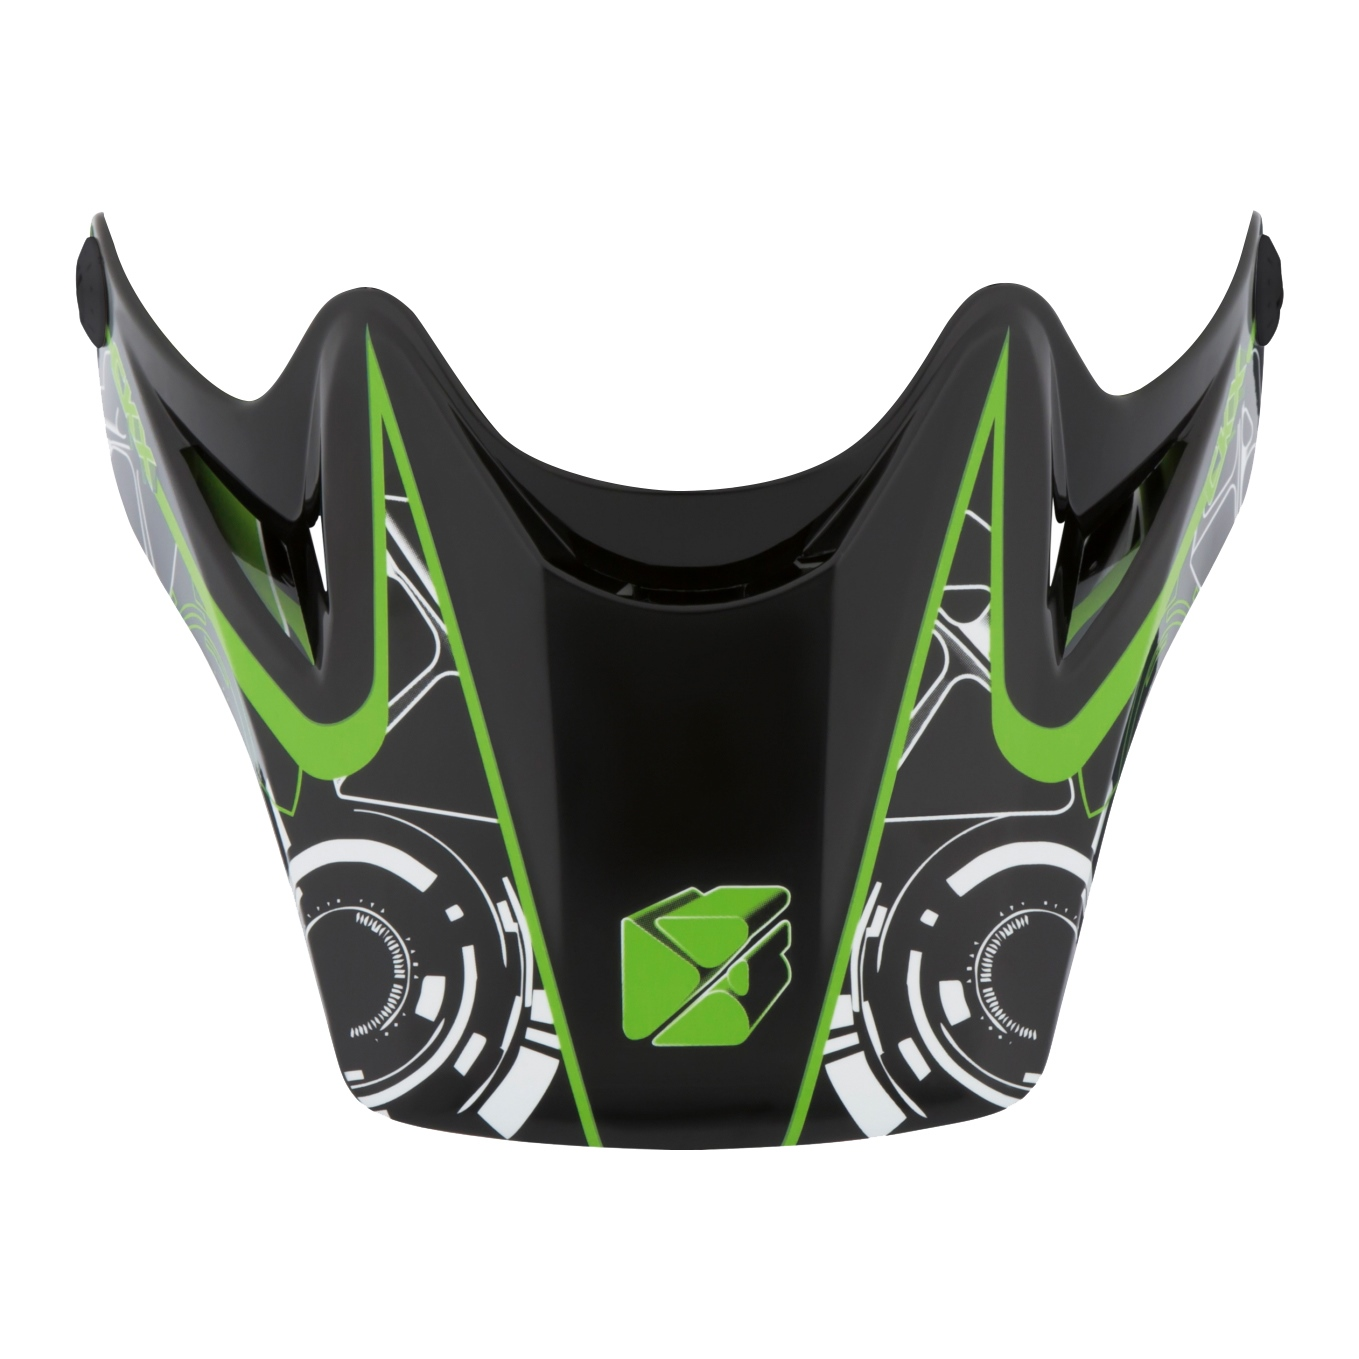 CKX Peak for TX218Y Helmet Dimension Green One Size Fits All #505000